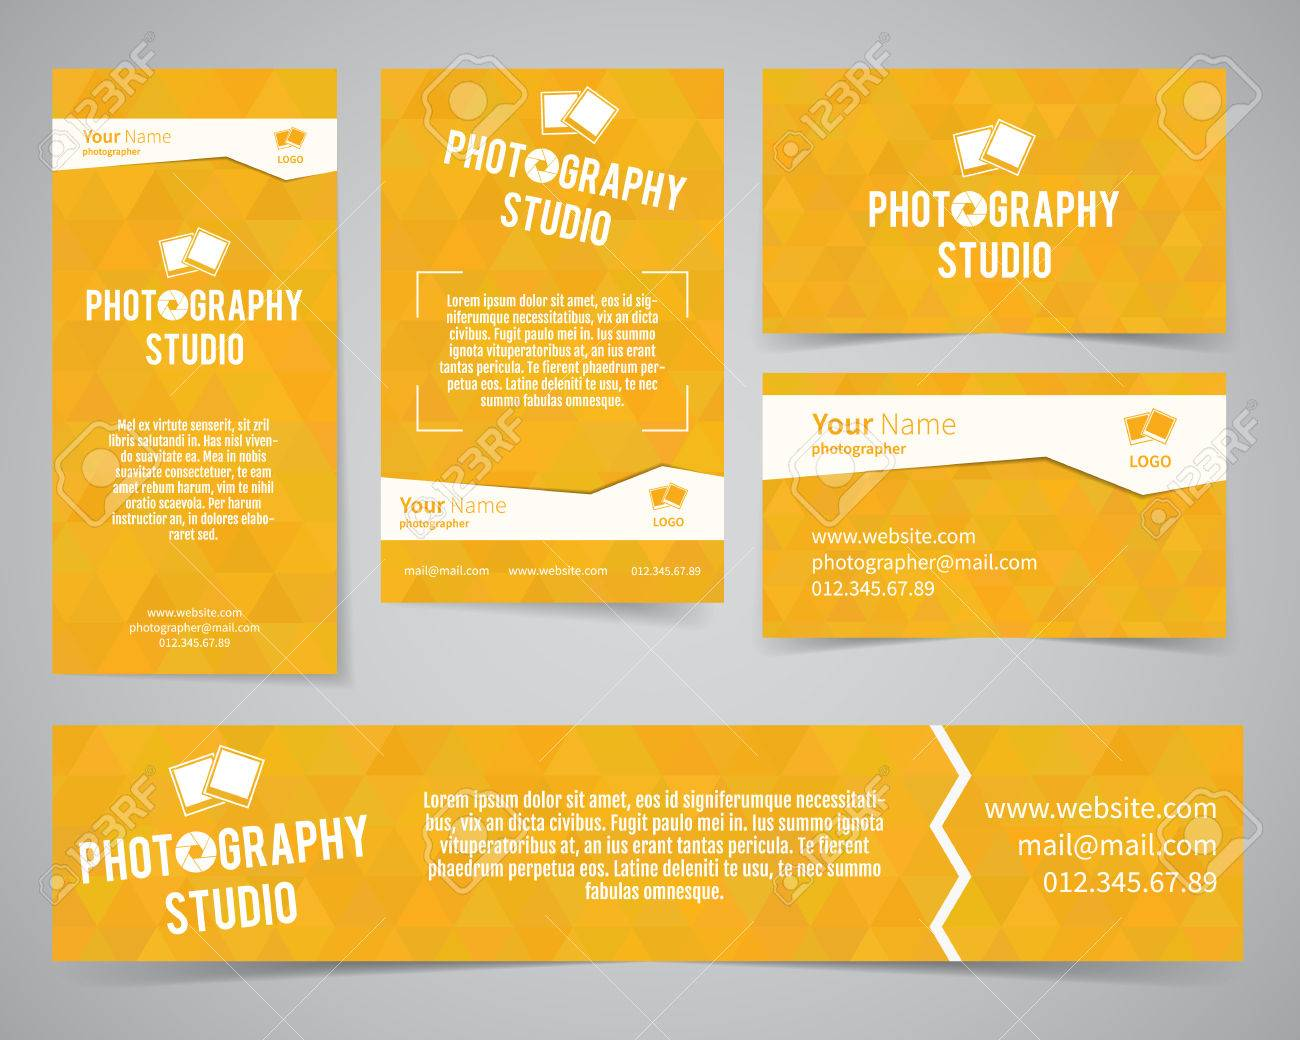 Modern light identity set business card banner flyer poster business card banner flyer poster templates photography studio reheart Choice Image